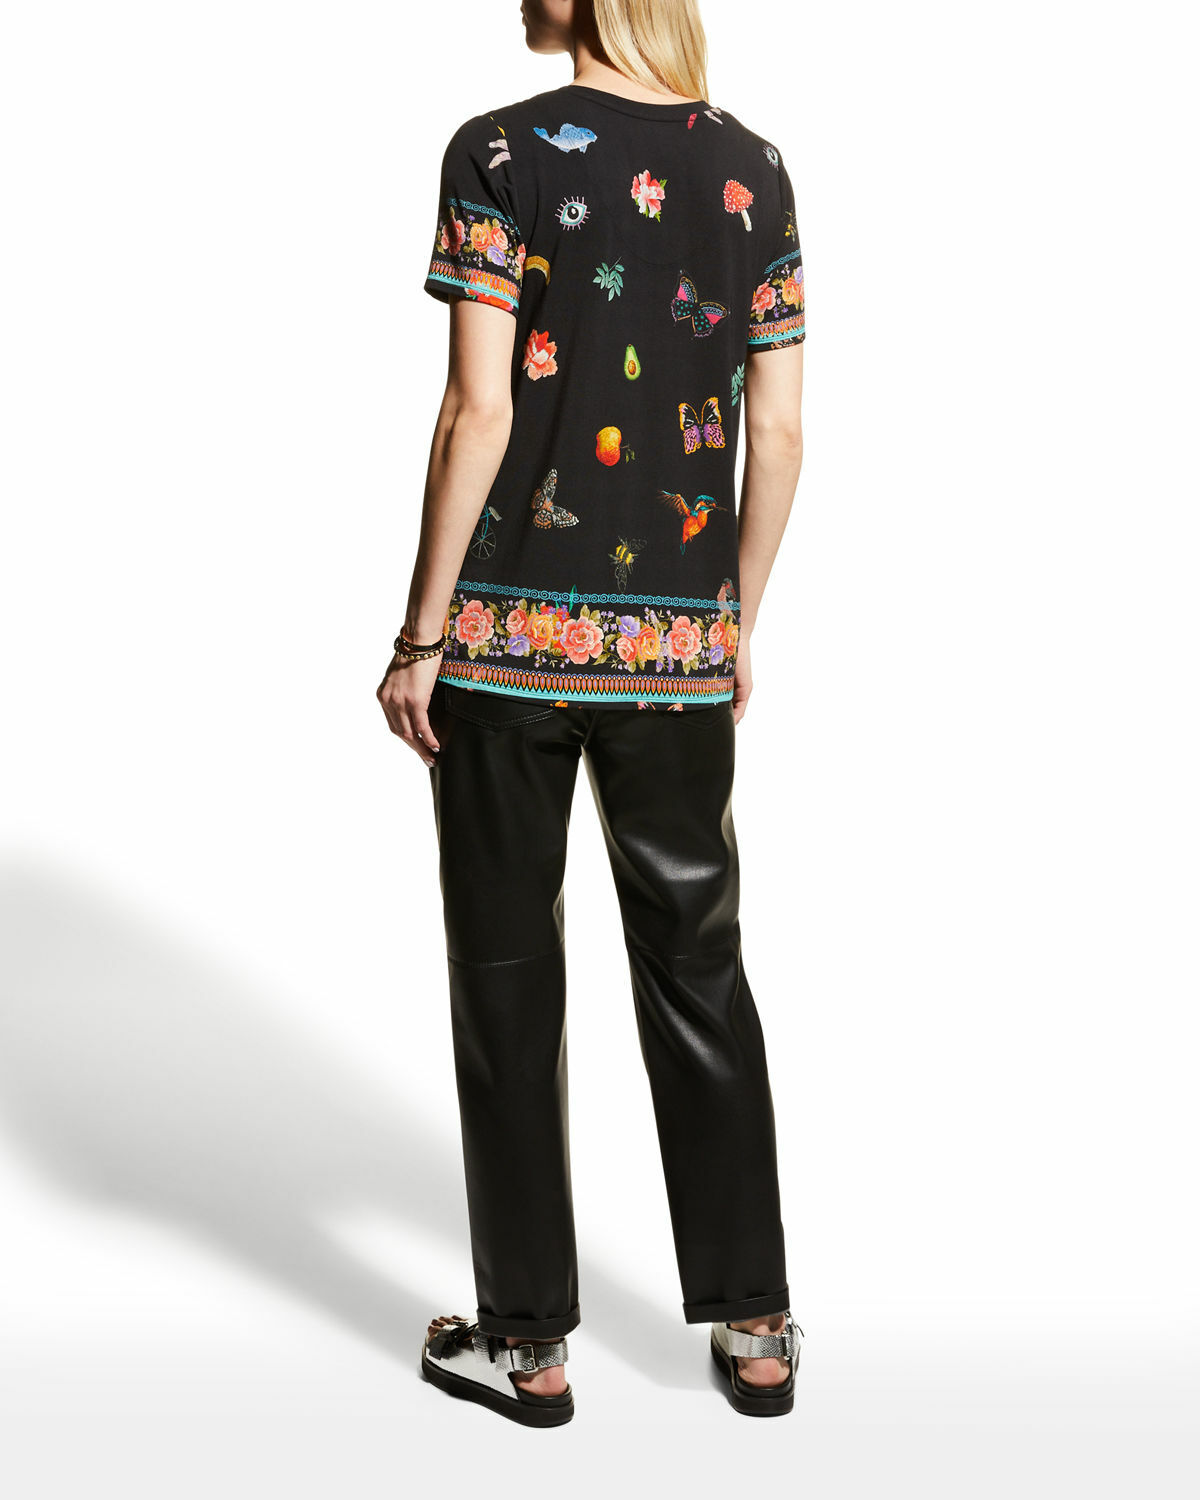 Johnny Was ZOOEY black V NECK BAMBOO Knit Tee Top Flower Blouse Shirt Slim L NEW